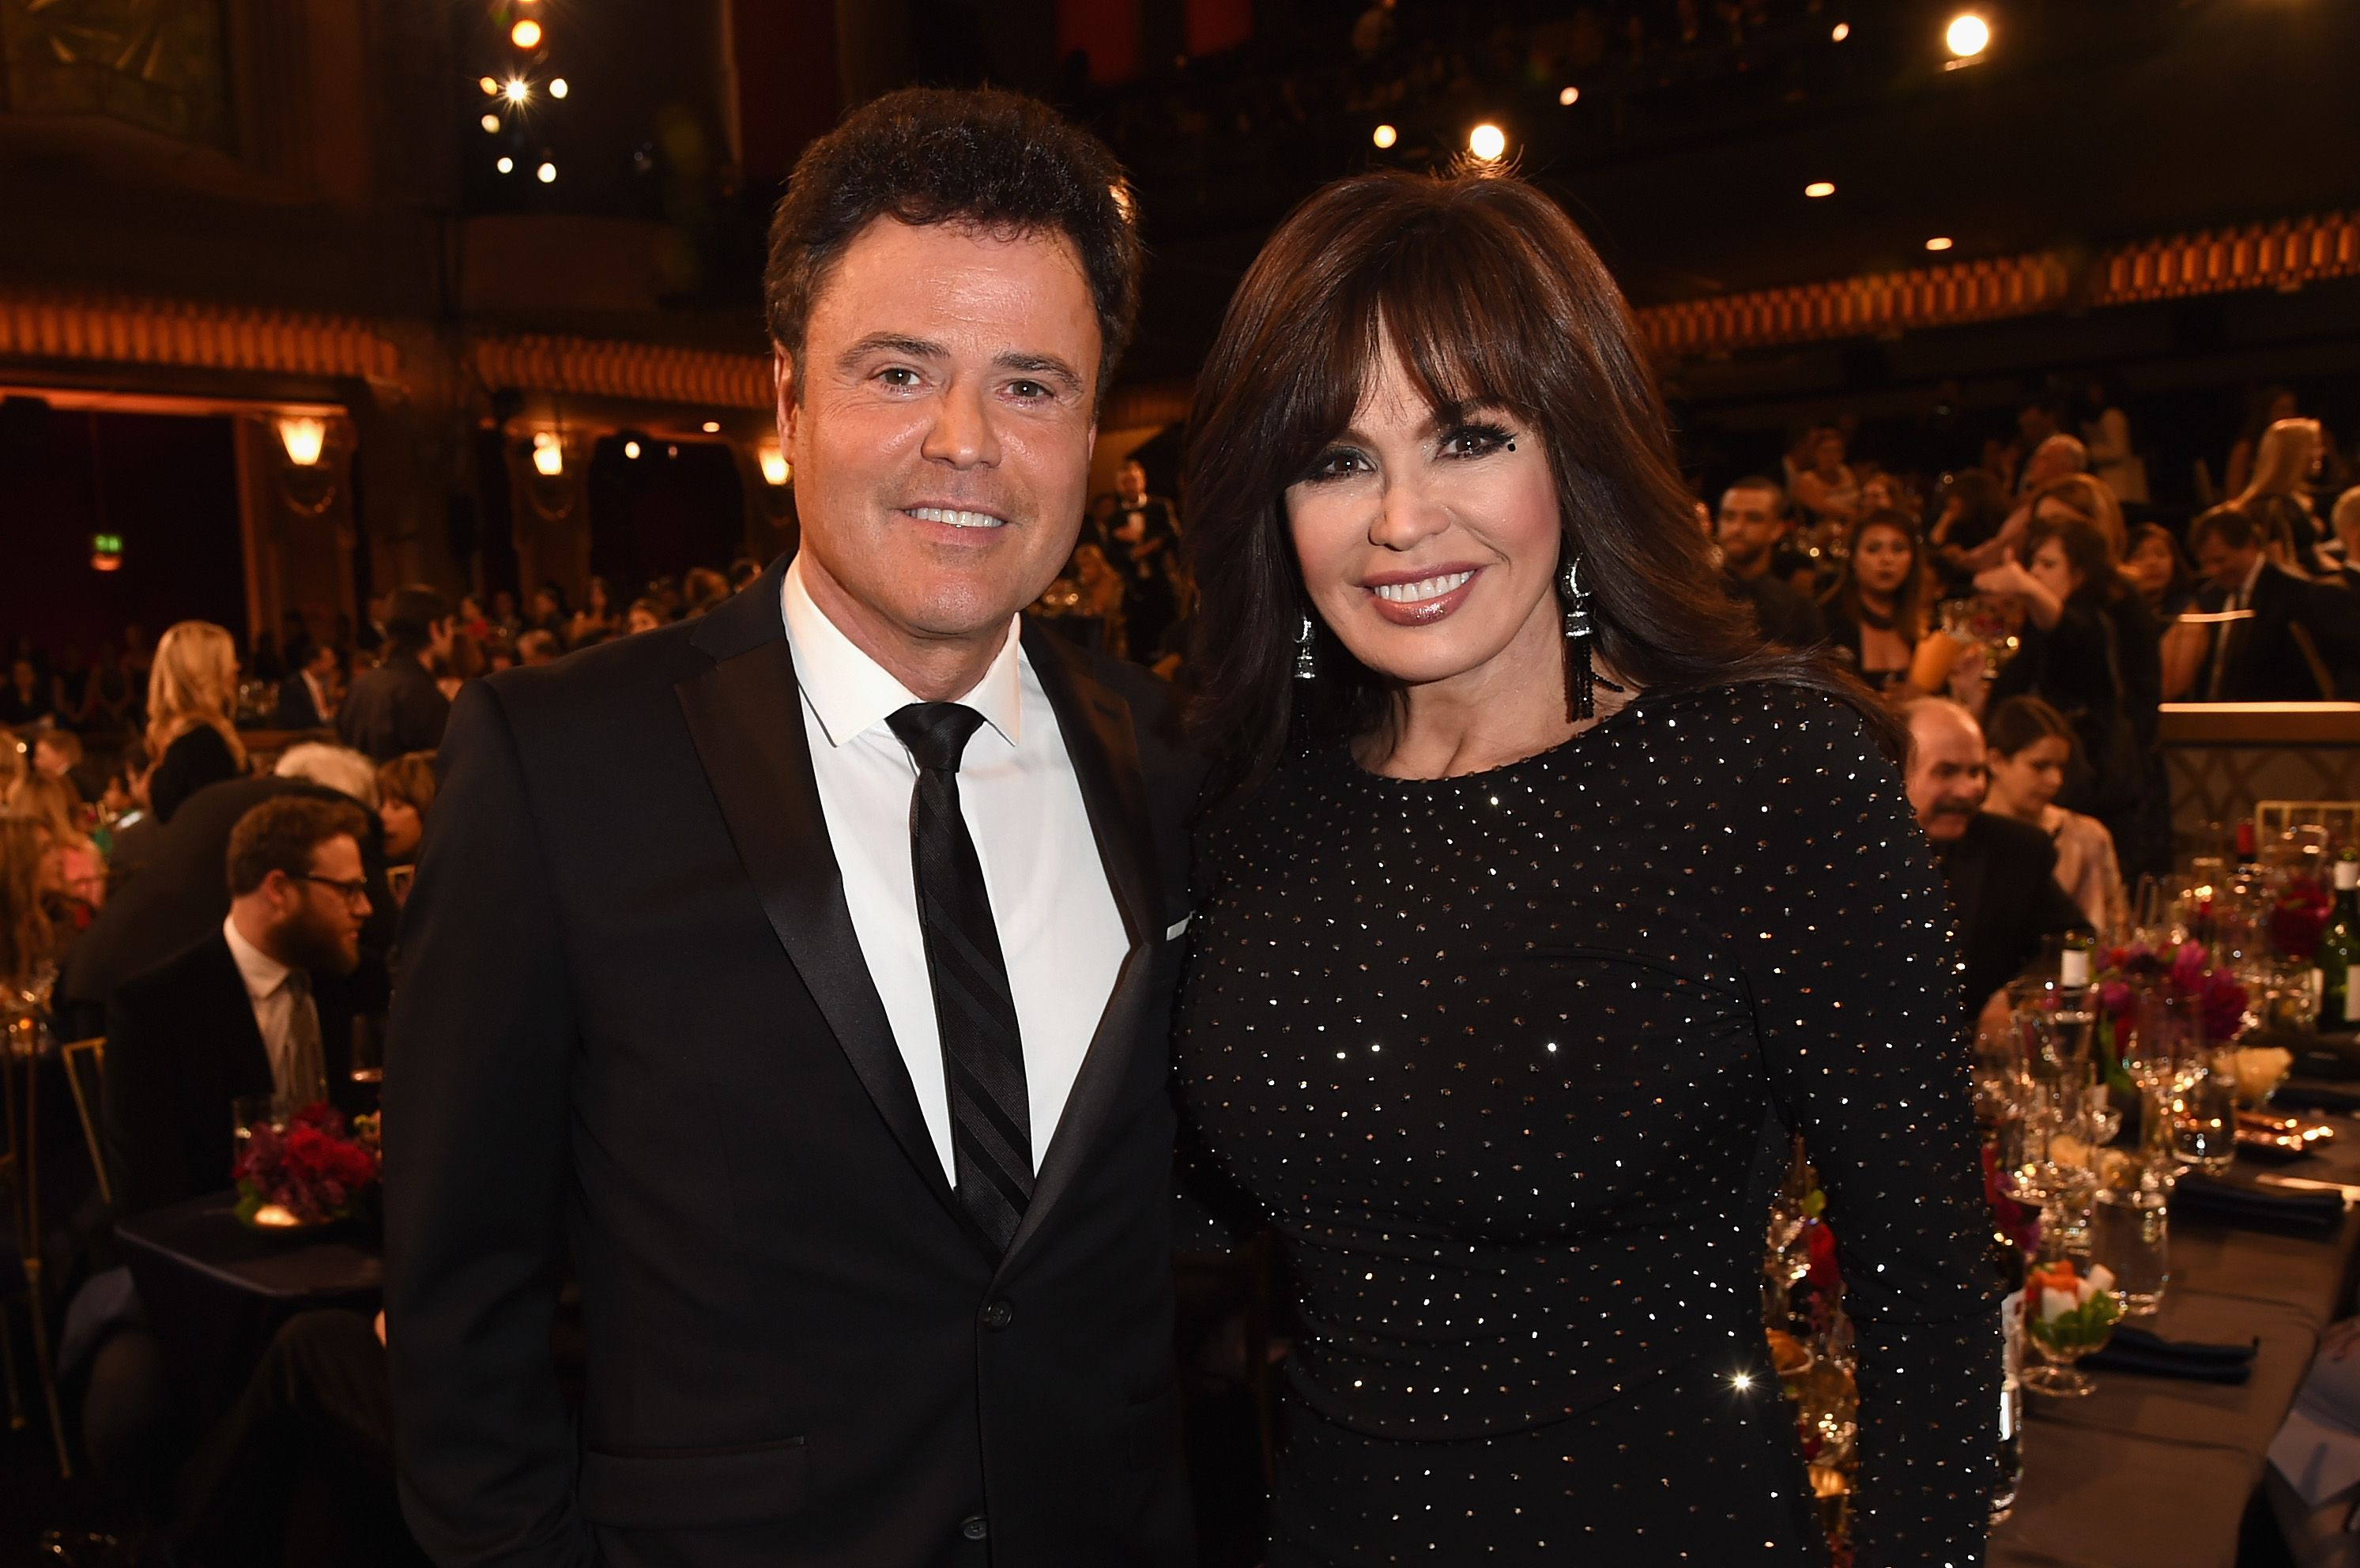 Donny and Marie Osmond at the 2015 TV Land Awards in Beverly Hills | Source: Getty Images